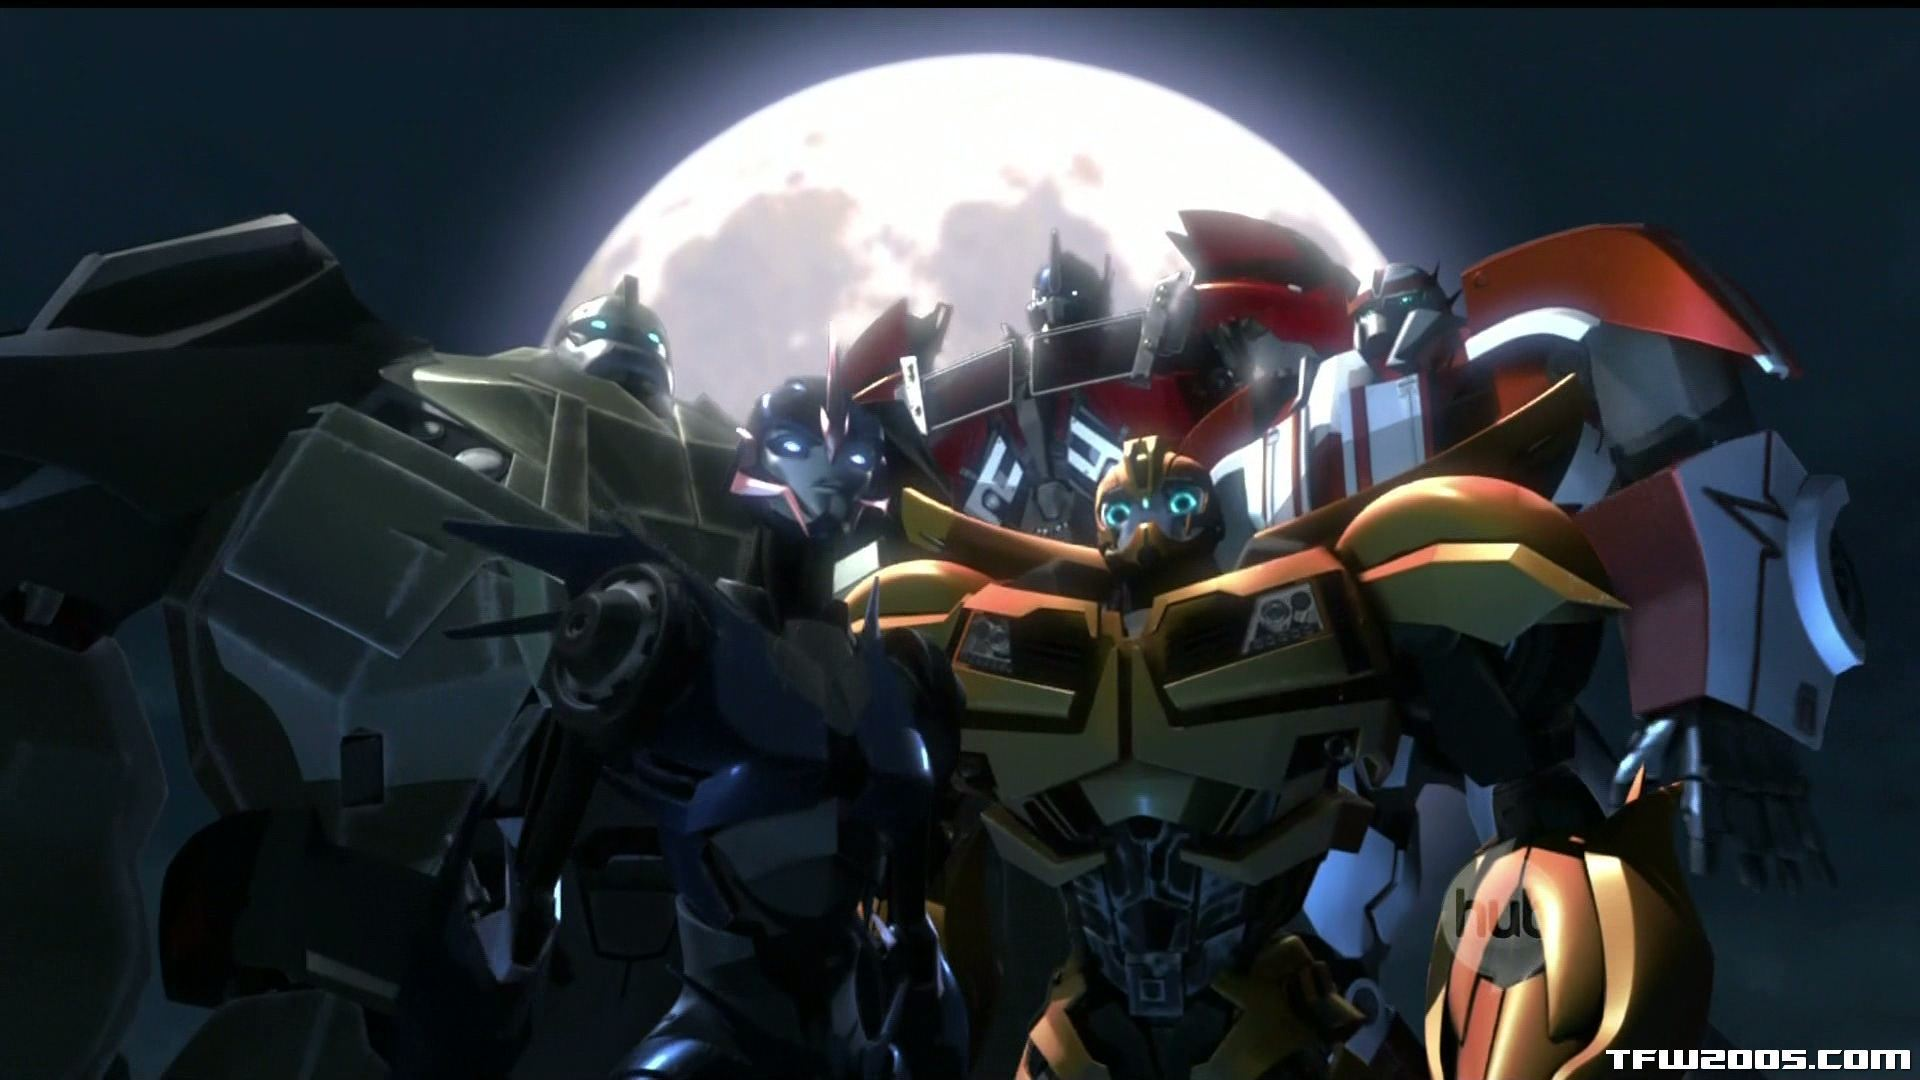 Transformers-Prime-the-animated-series-transformers-prime-20162266-1920-1080.jpg